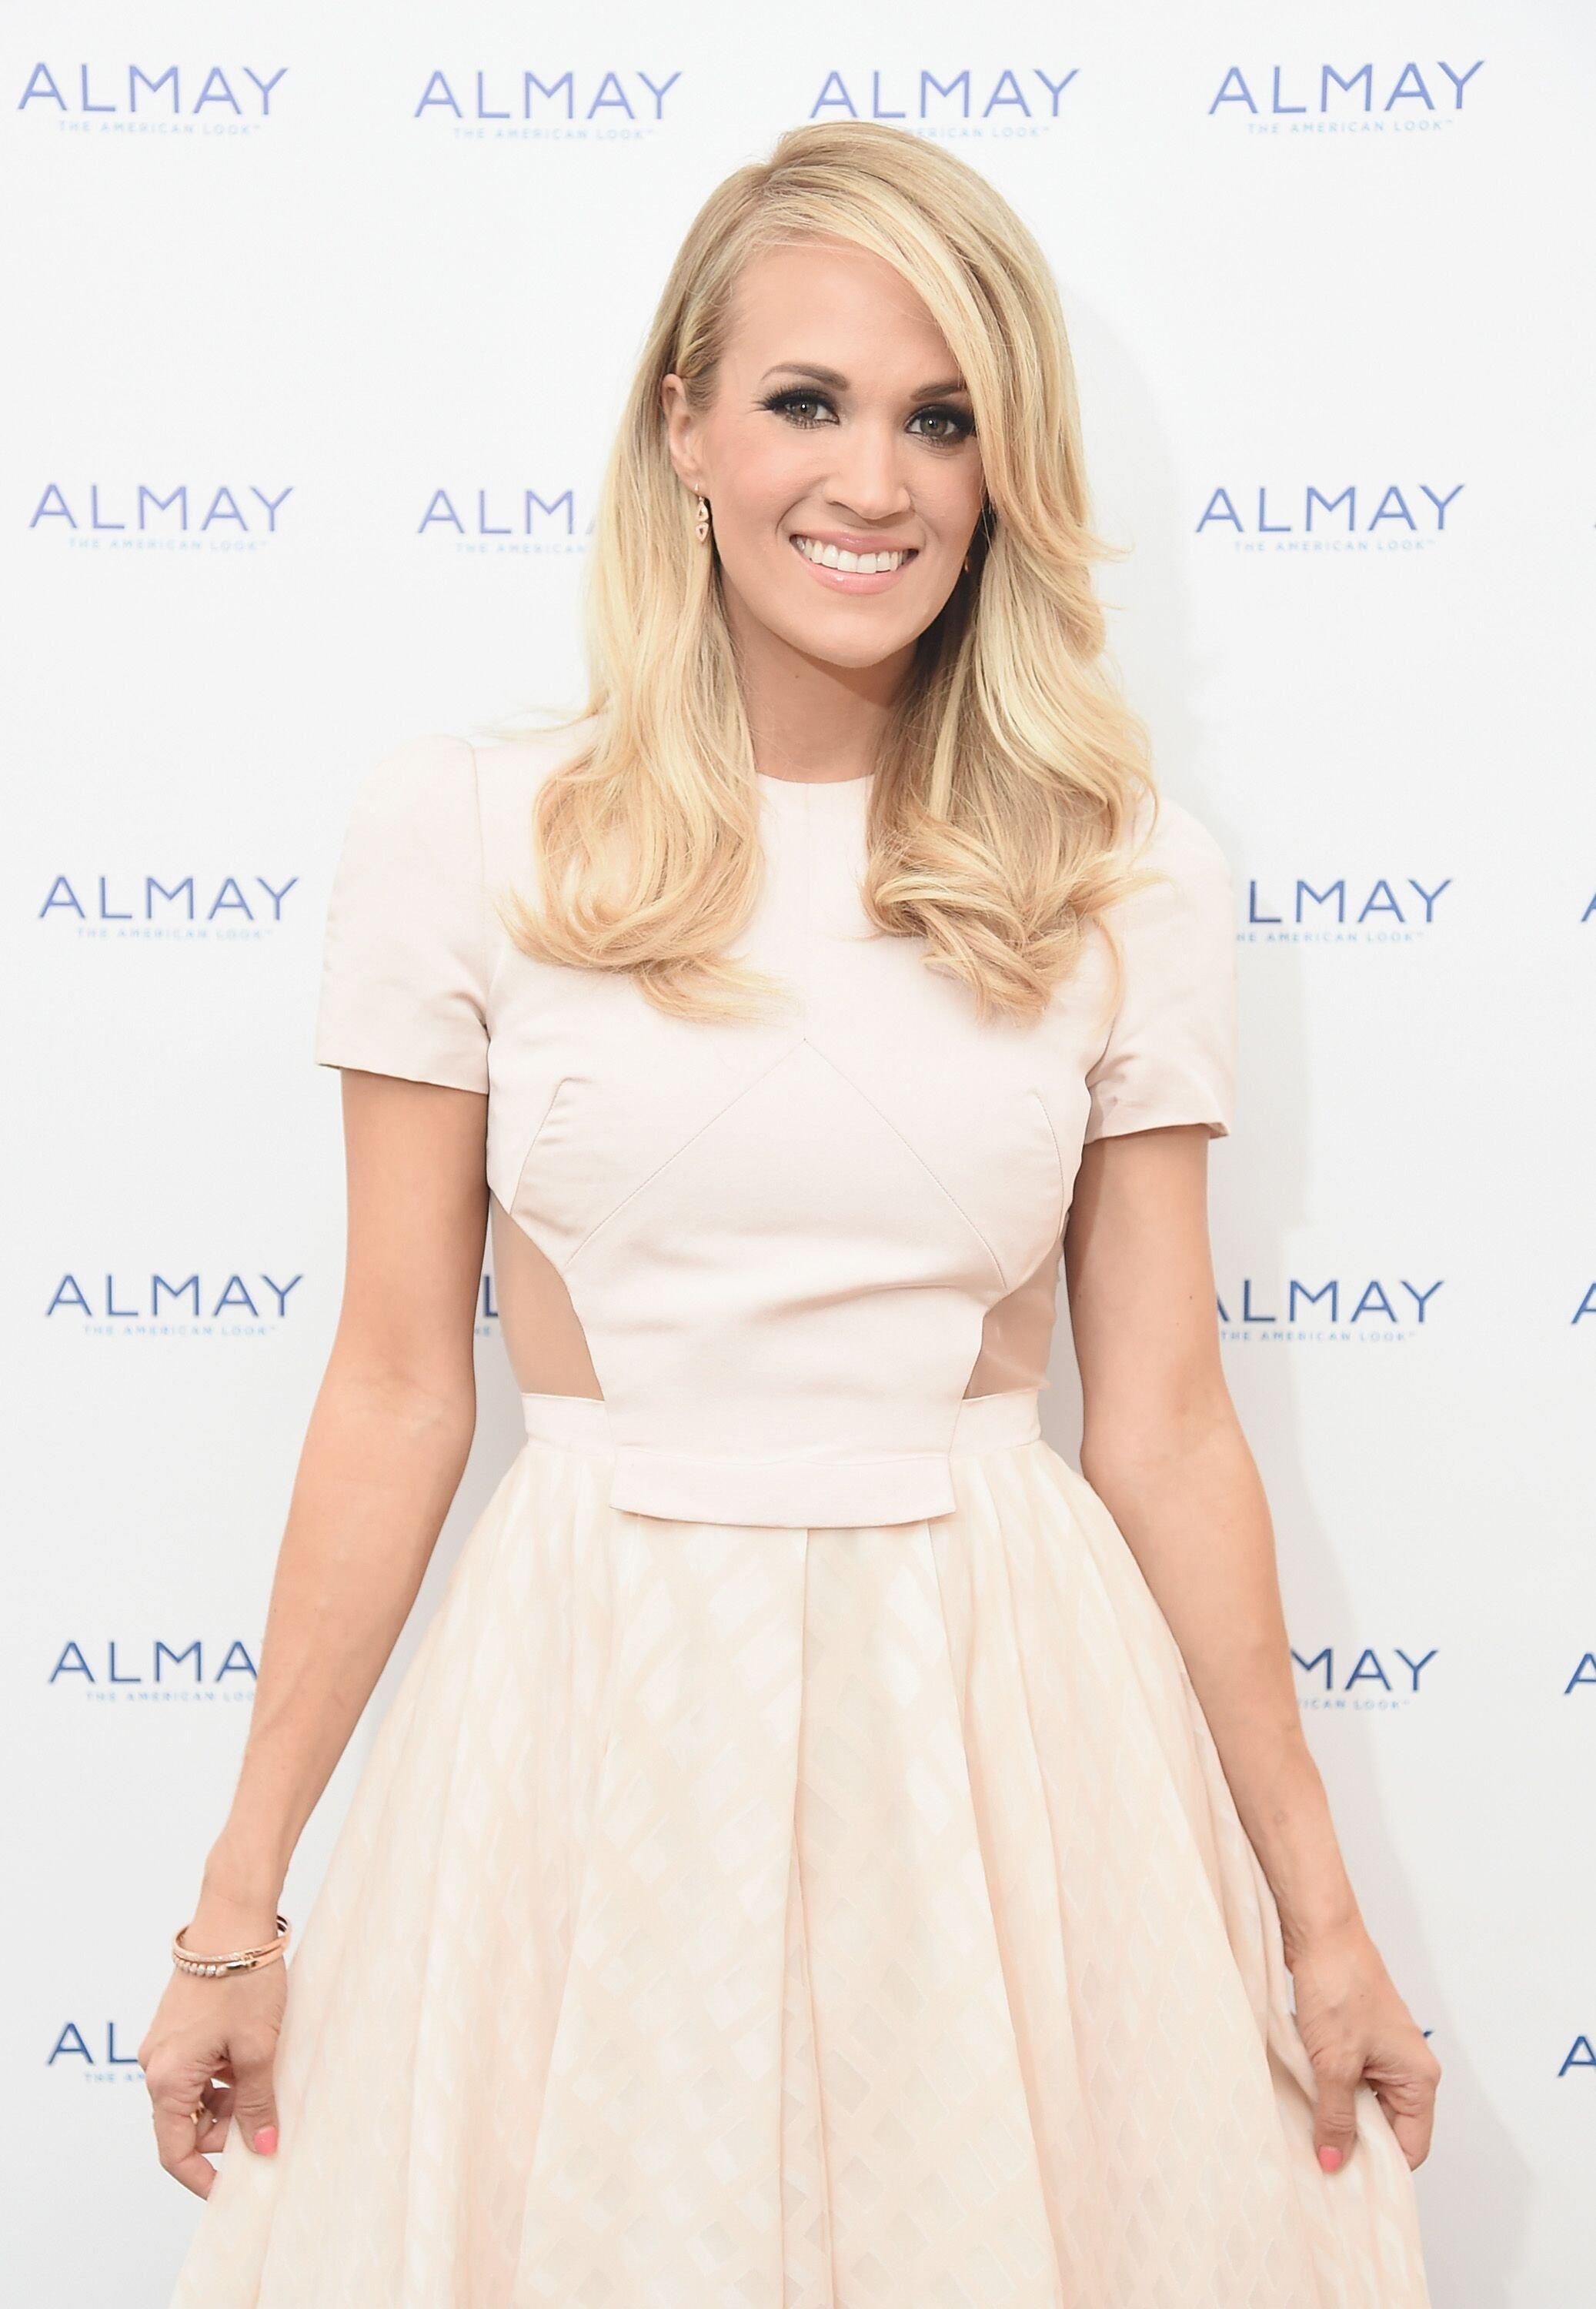 Carrie Underwood at Almay Fresh-Faced Beauty Day on October 21, 2015, in New York City | Photo: Michael Loccisano/Getty Images